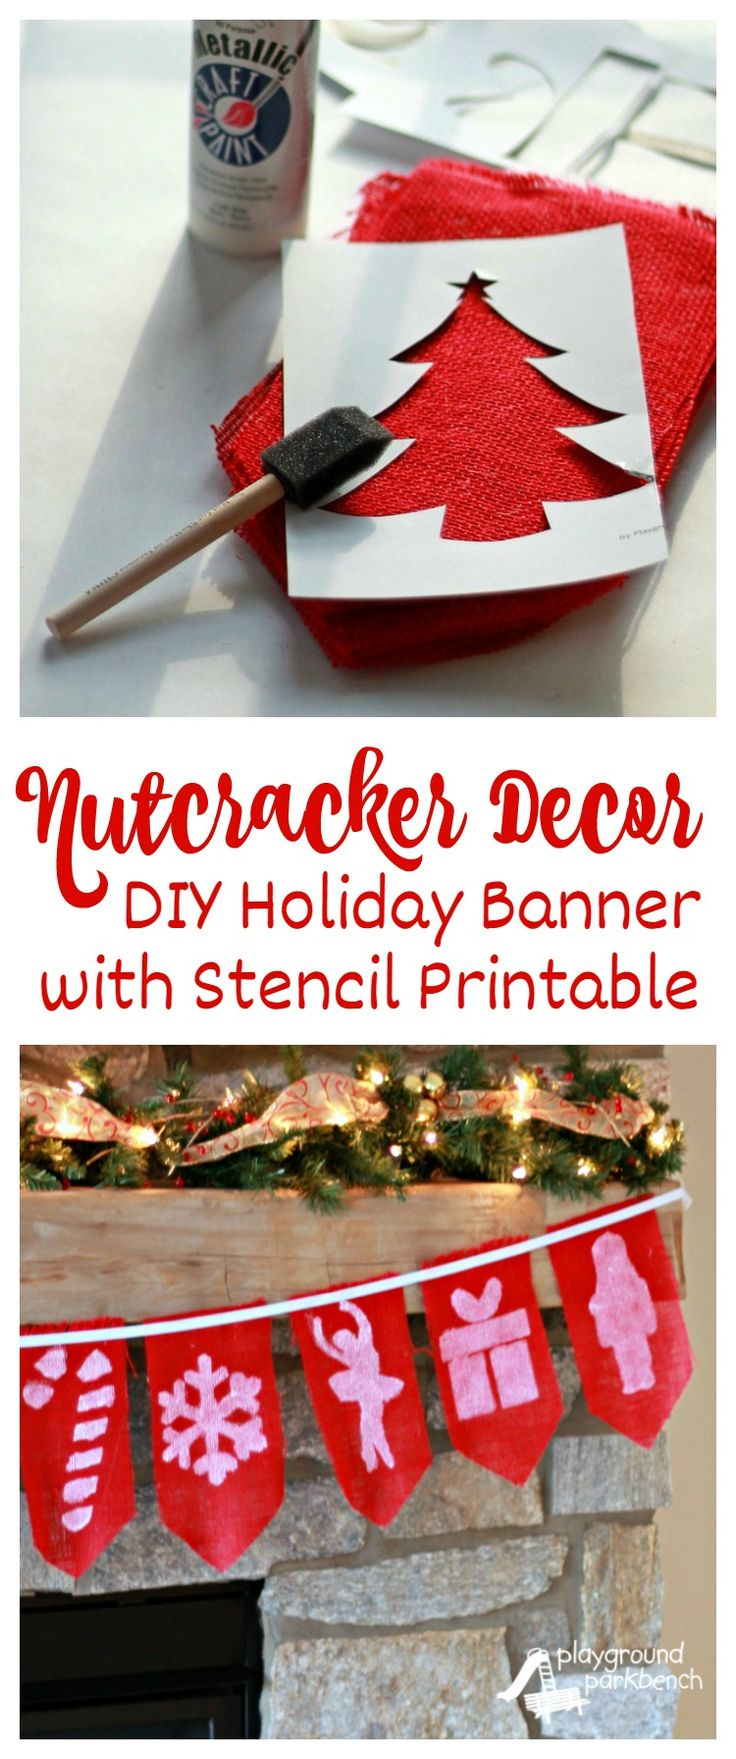 How to make a nutcracker christmas decoration - Nutcracker Decor Diy Holiday Banner